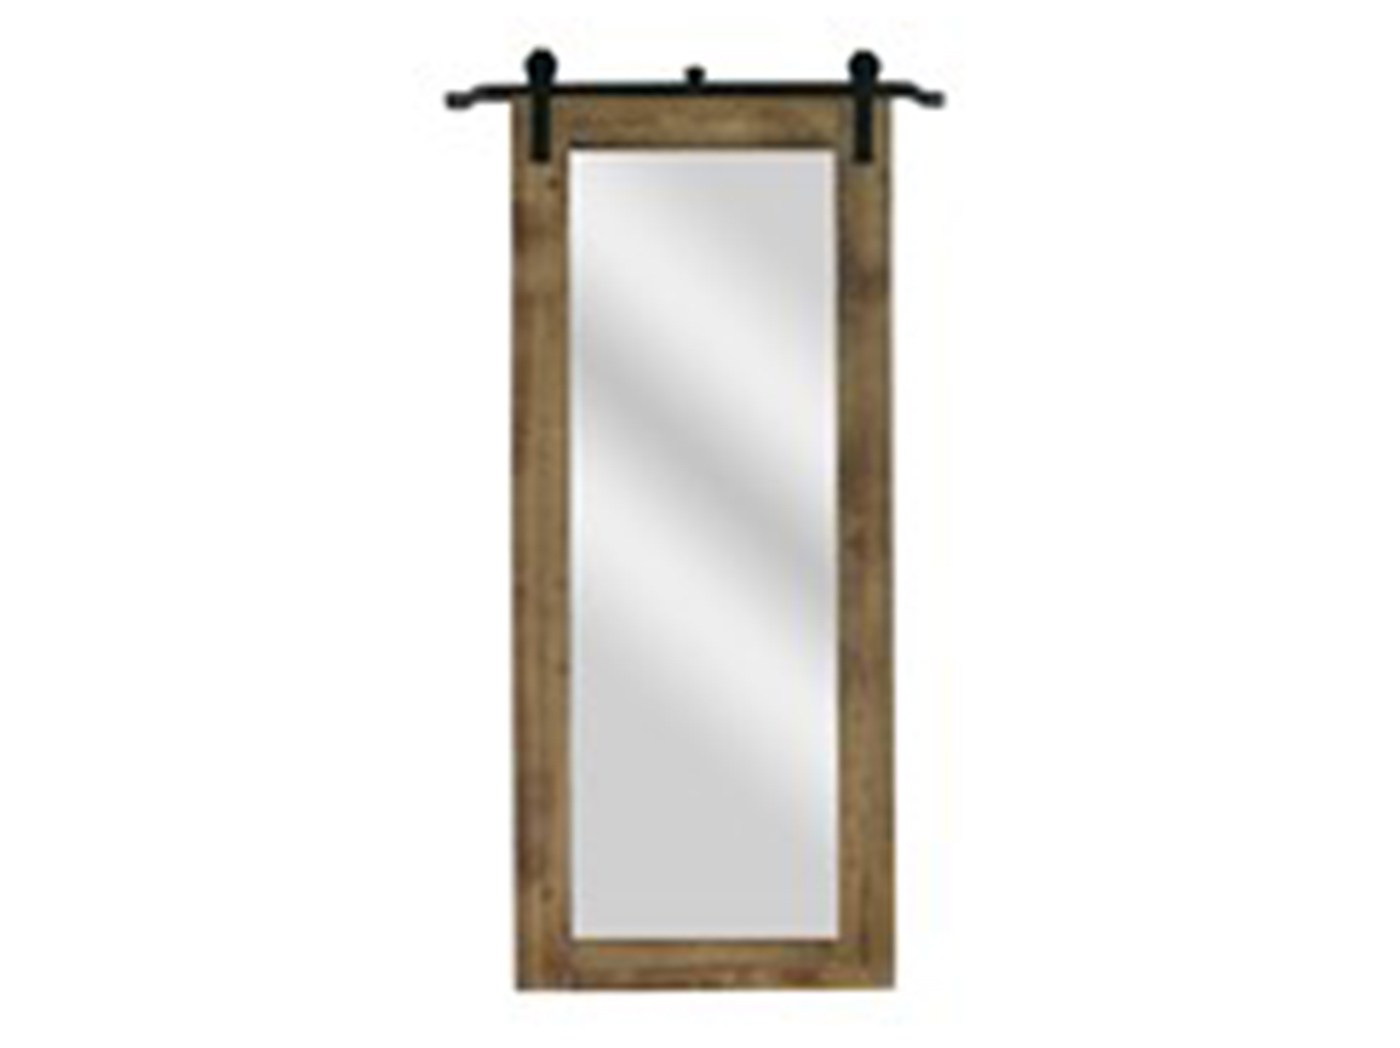 Accents – Mirrors | Steinhafels Pertaining To Grid Accent Mirrors (Image 2 of 20)